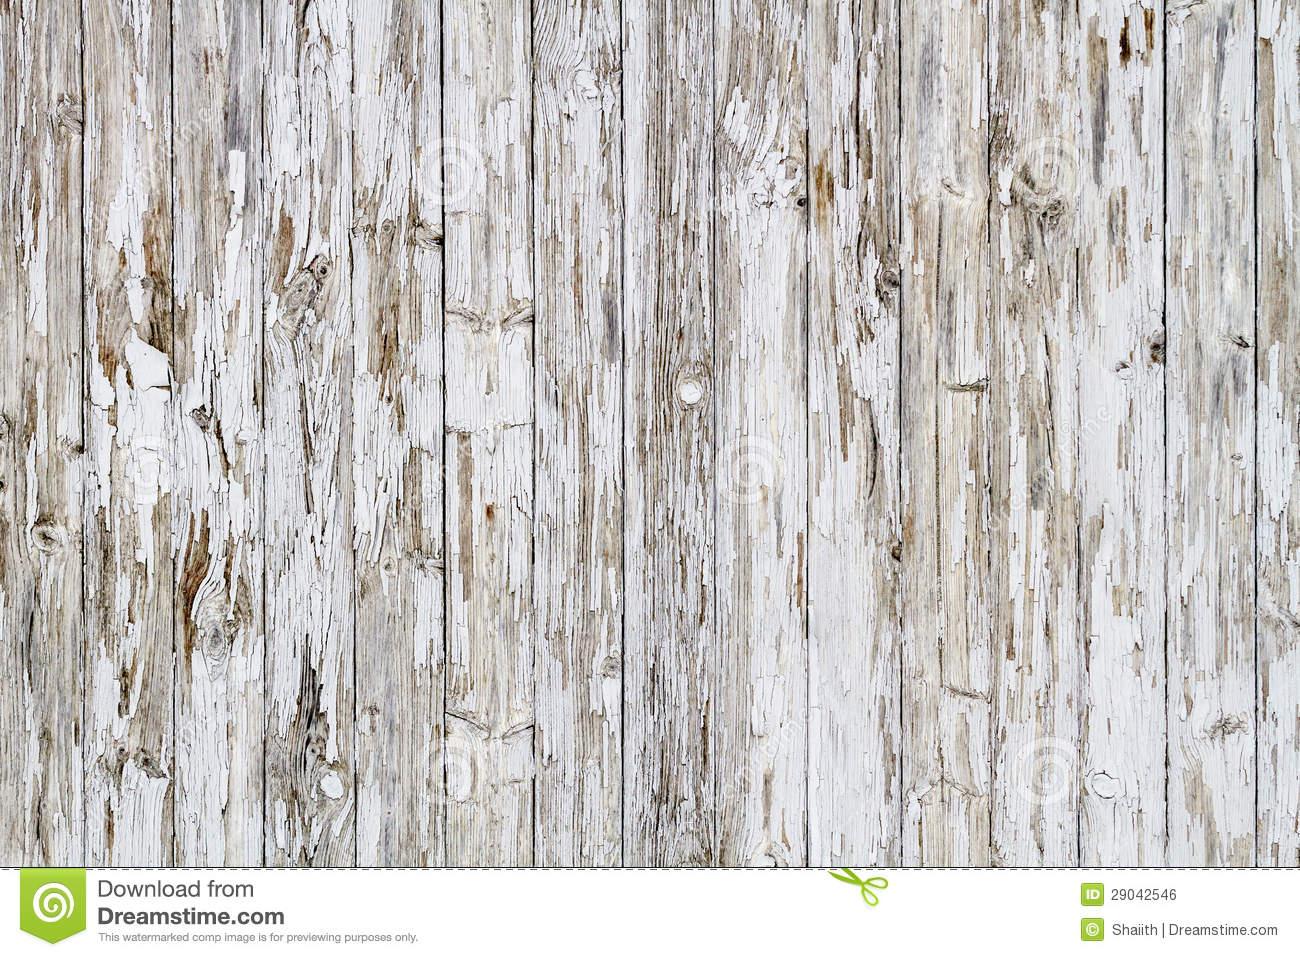 1000+ images about Weathered Wood on Pinterest.